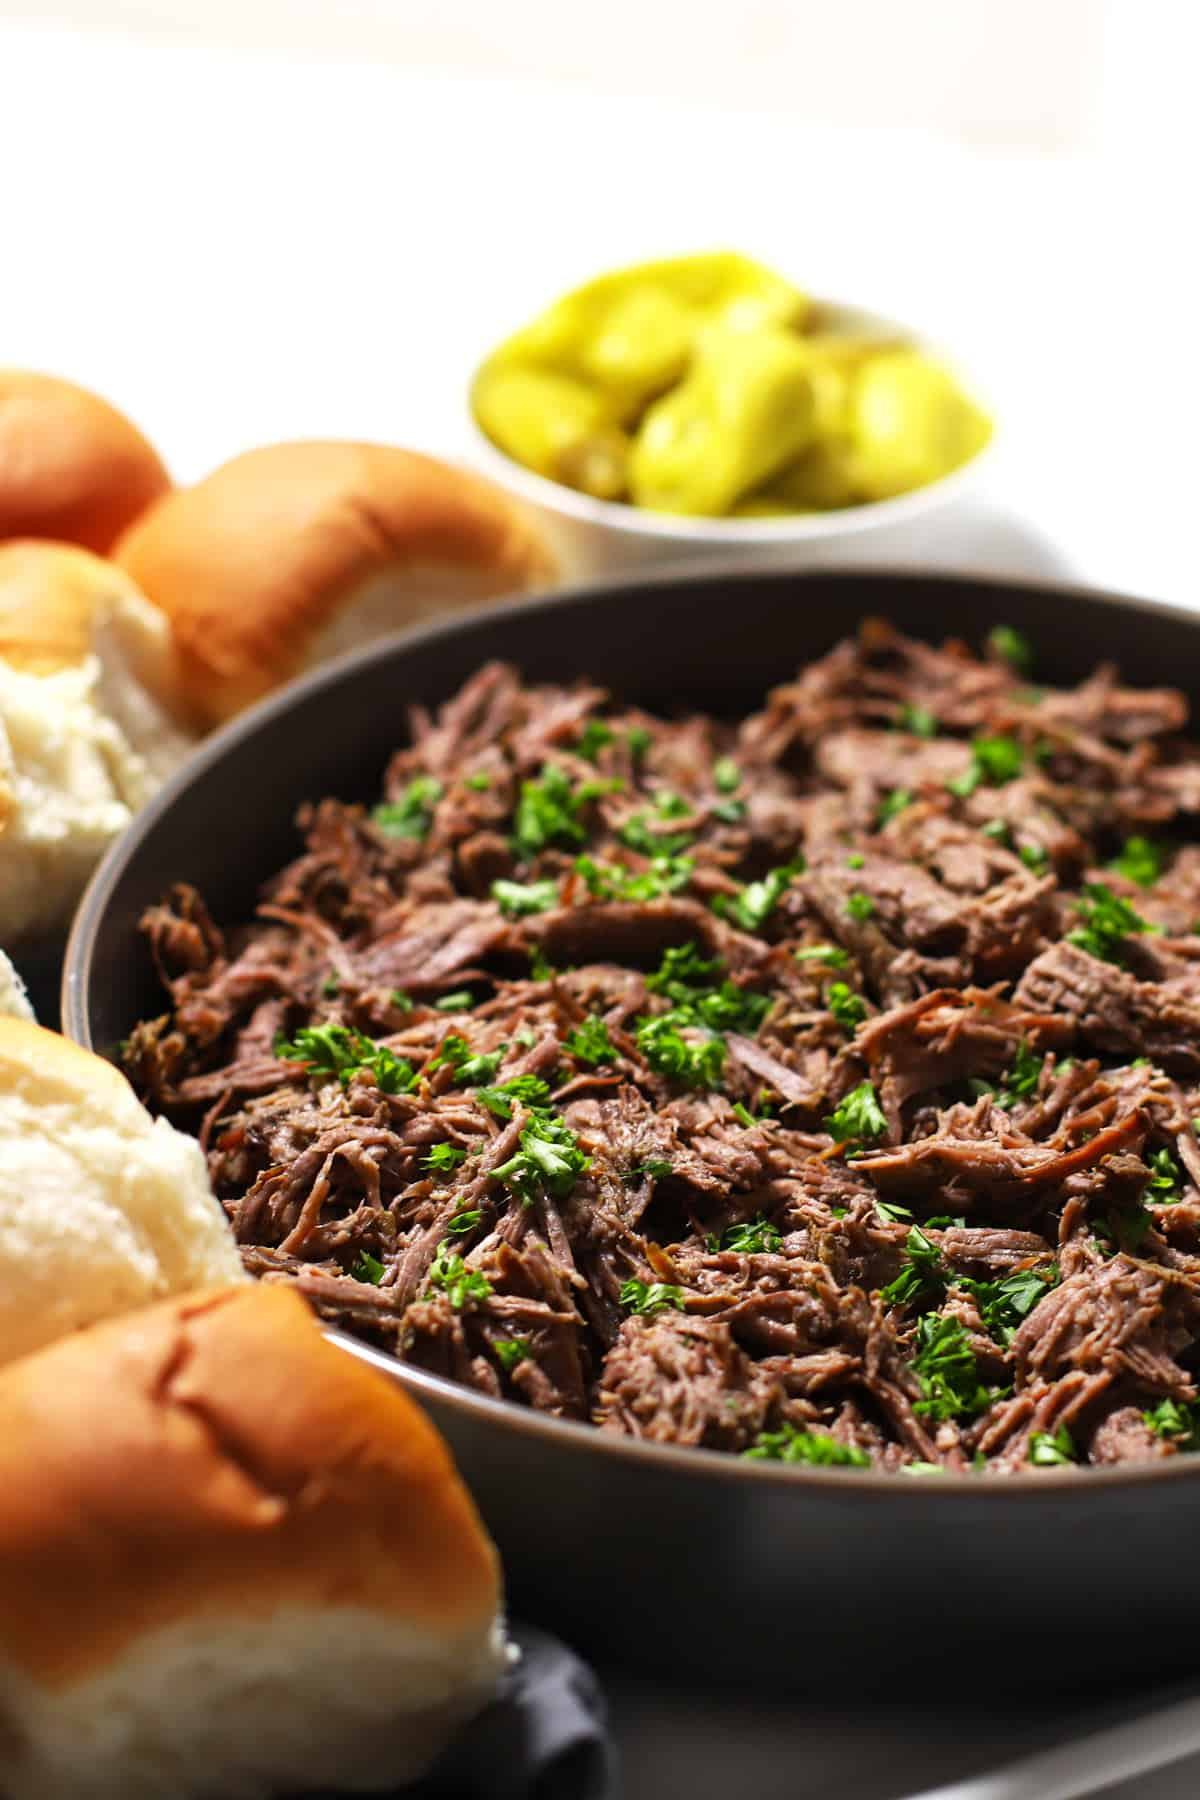 Shredded Italian beef on grey bowl on a platter with rolls.